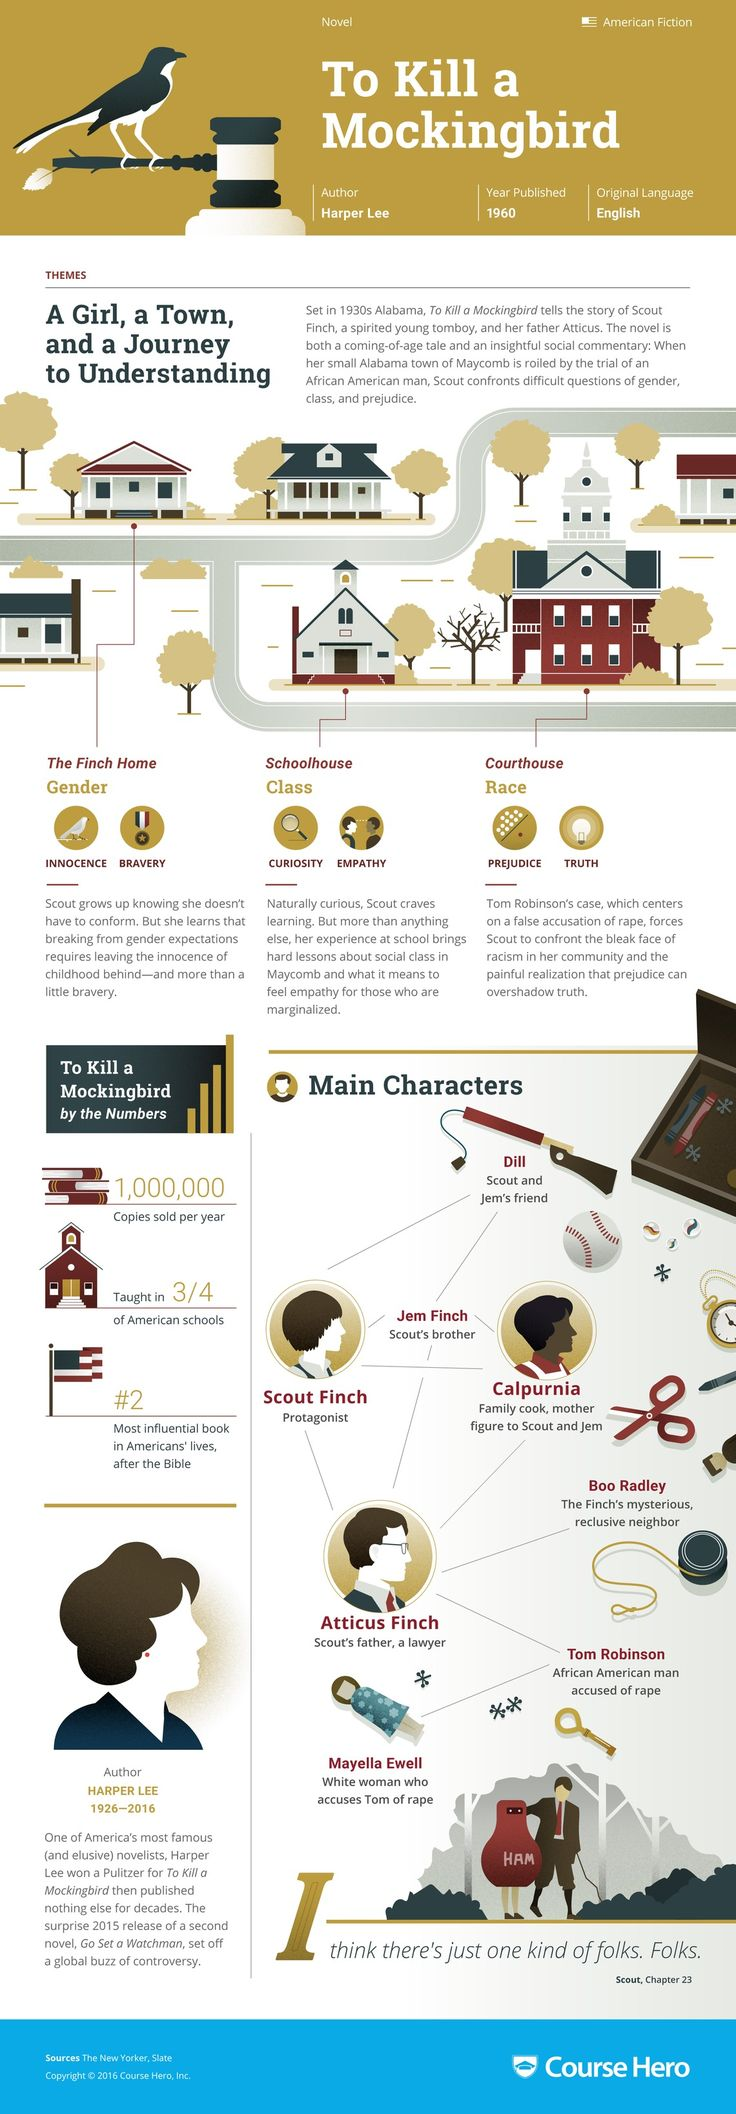 To Kill a Mockingbird Infographic | Course Hero